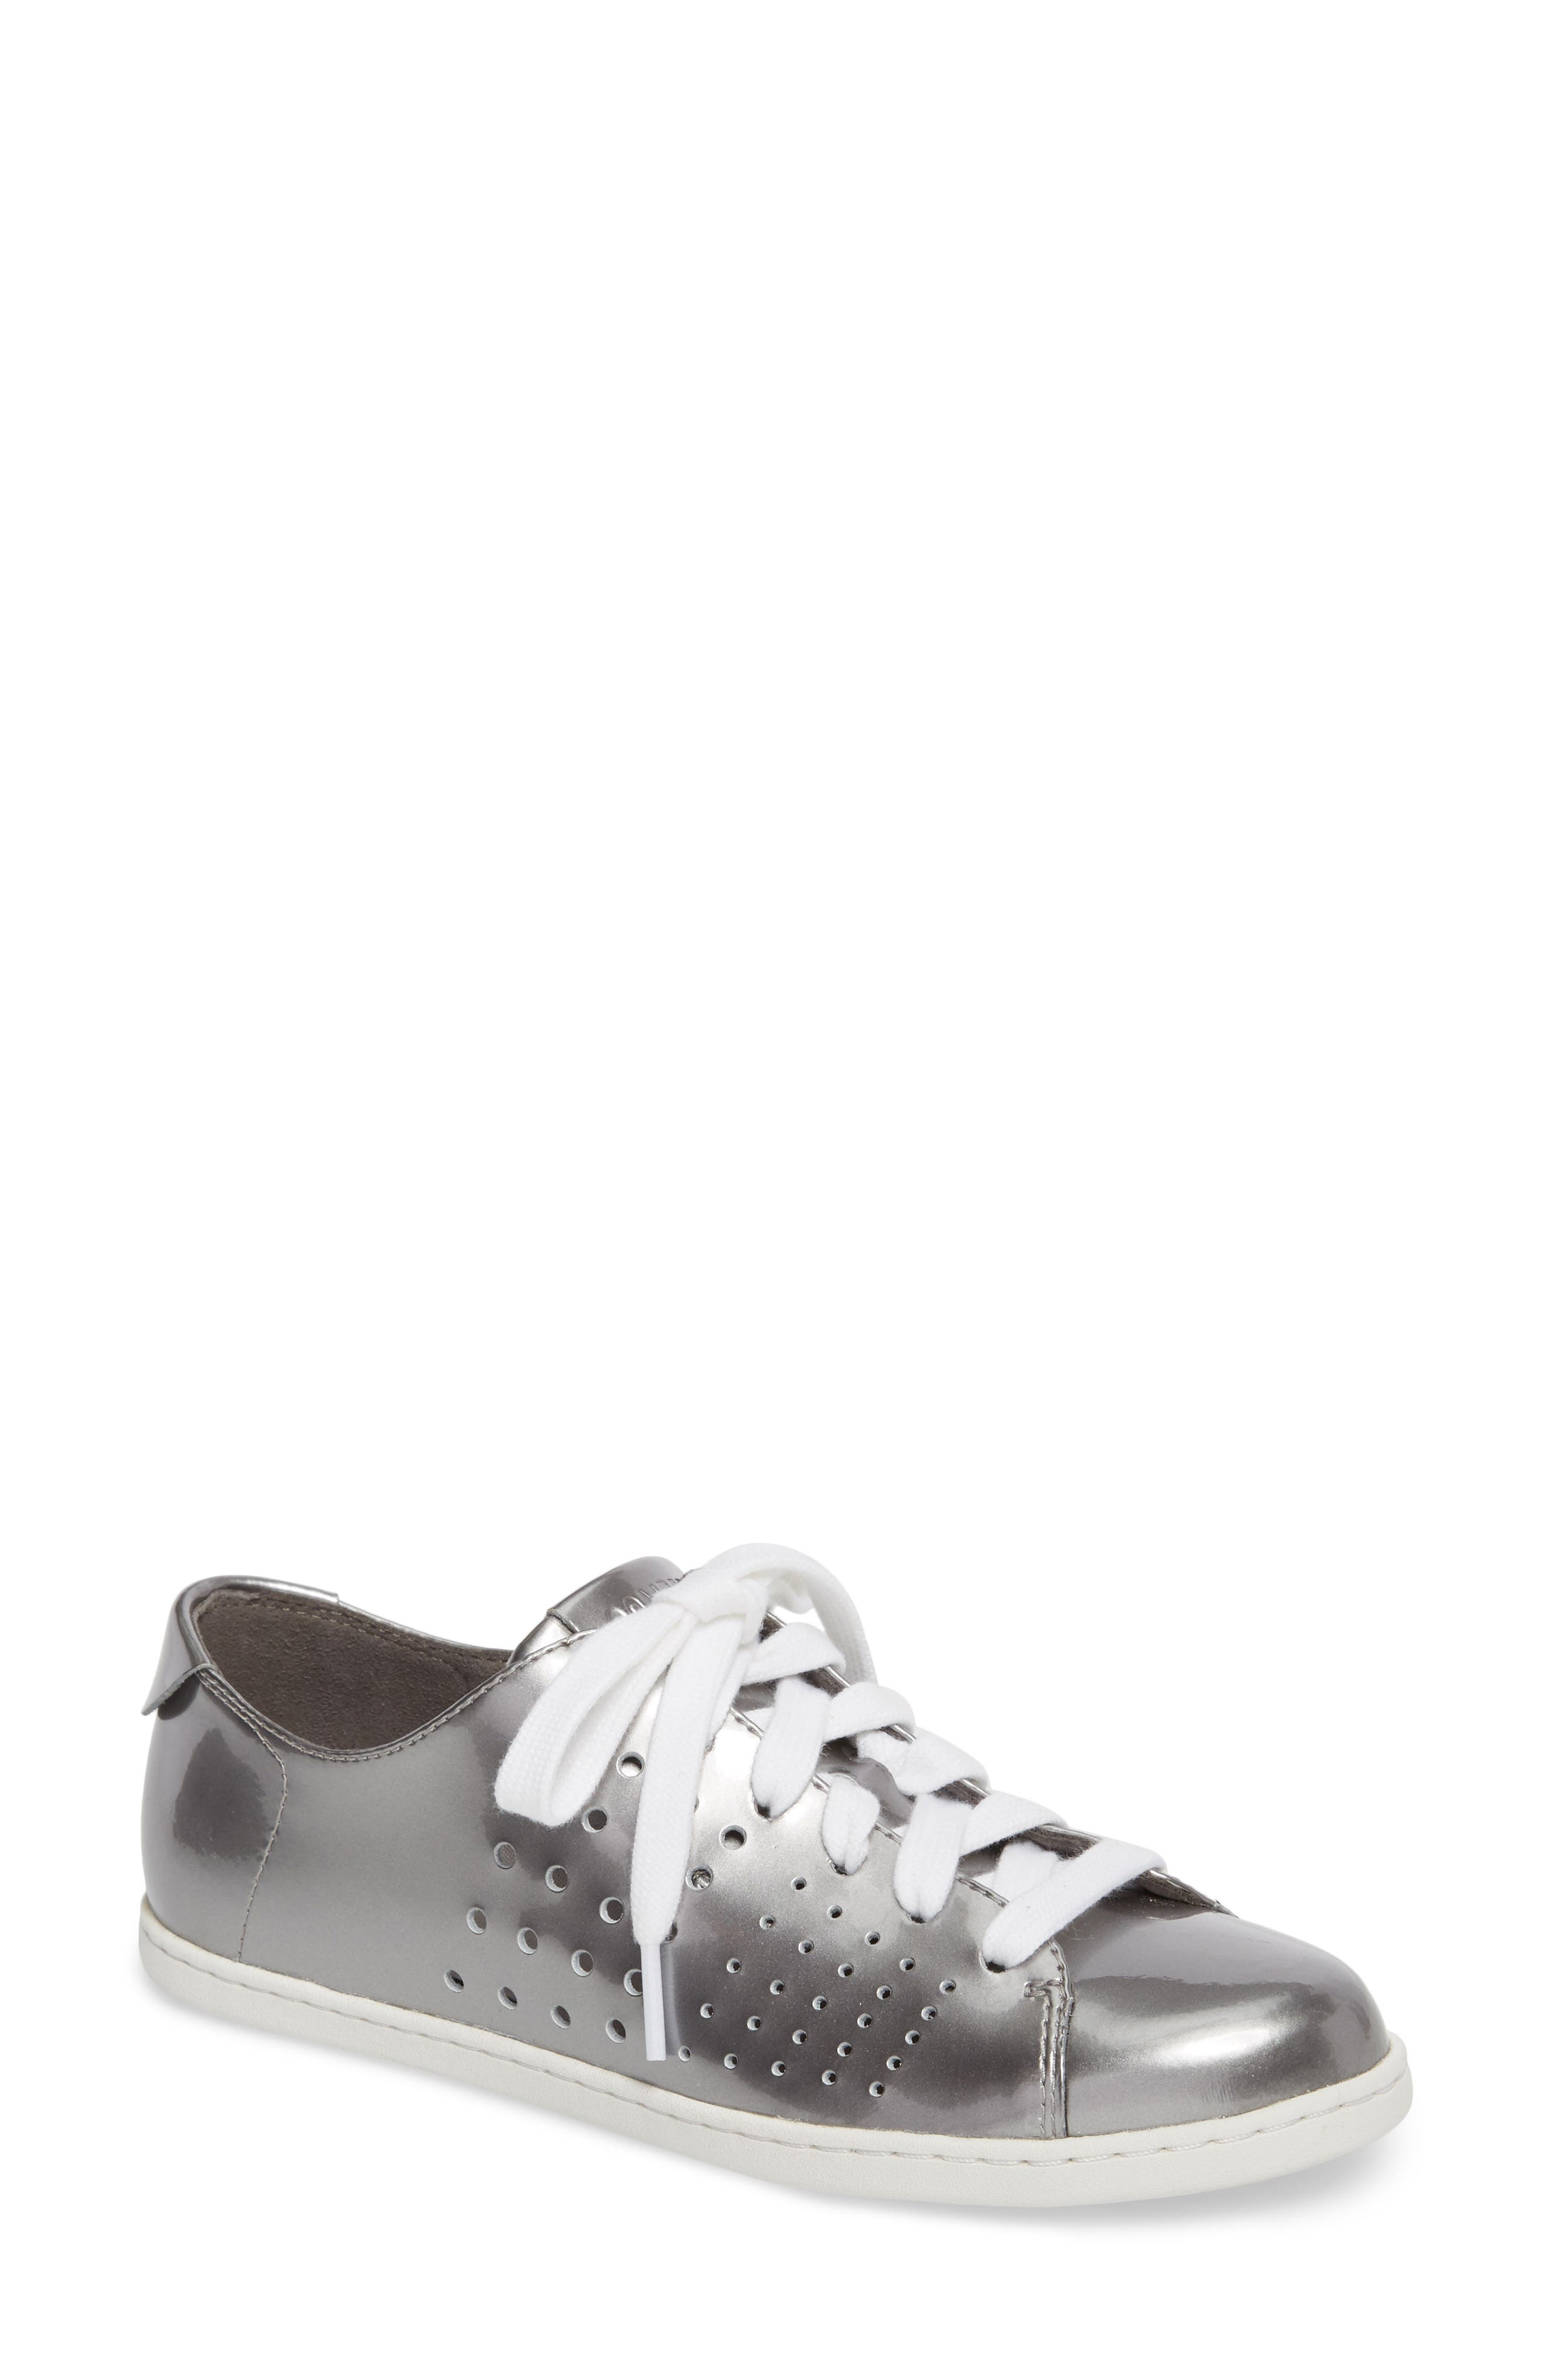 Camper Twins Perforated Low Top Sneaker (Women)